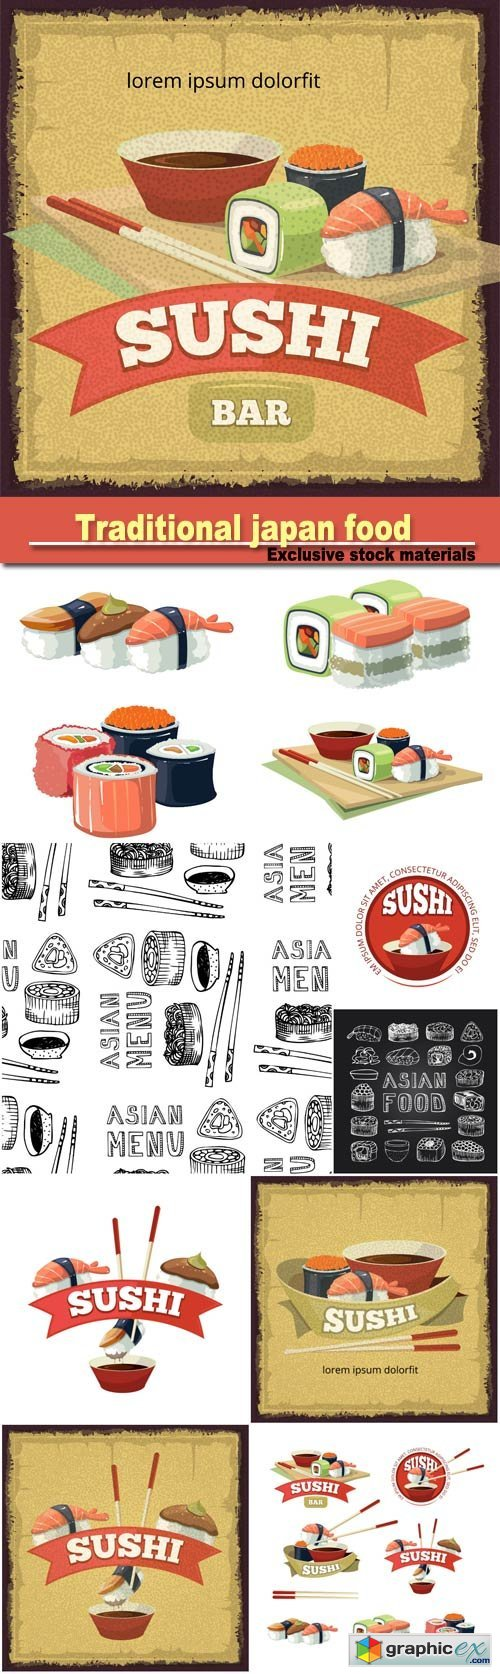 vintage poster with emblem of sushi banners, traditional japan food